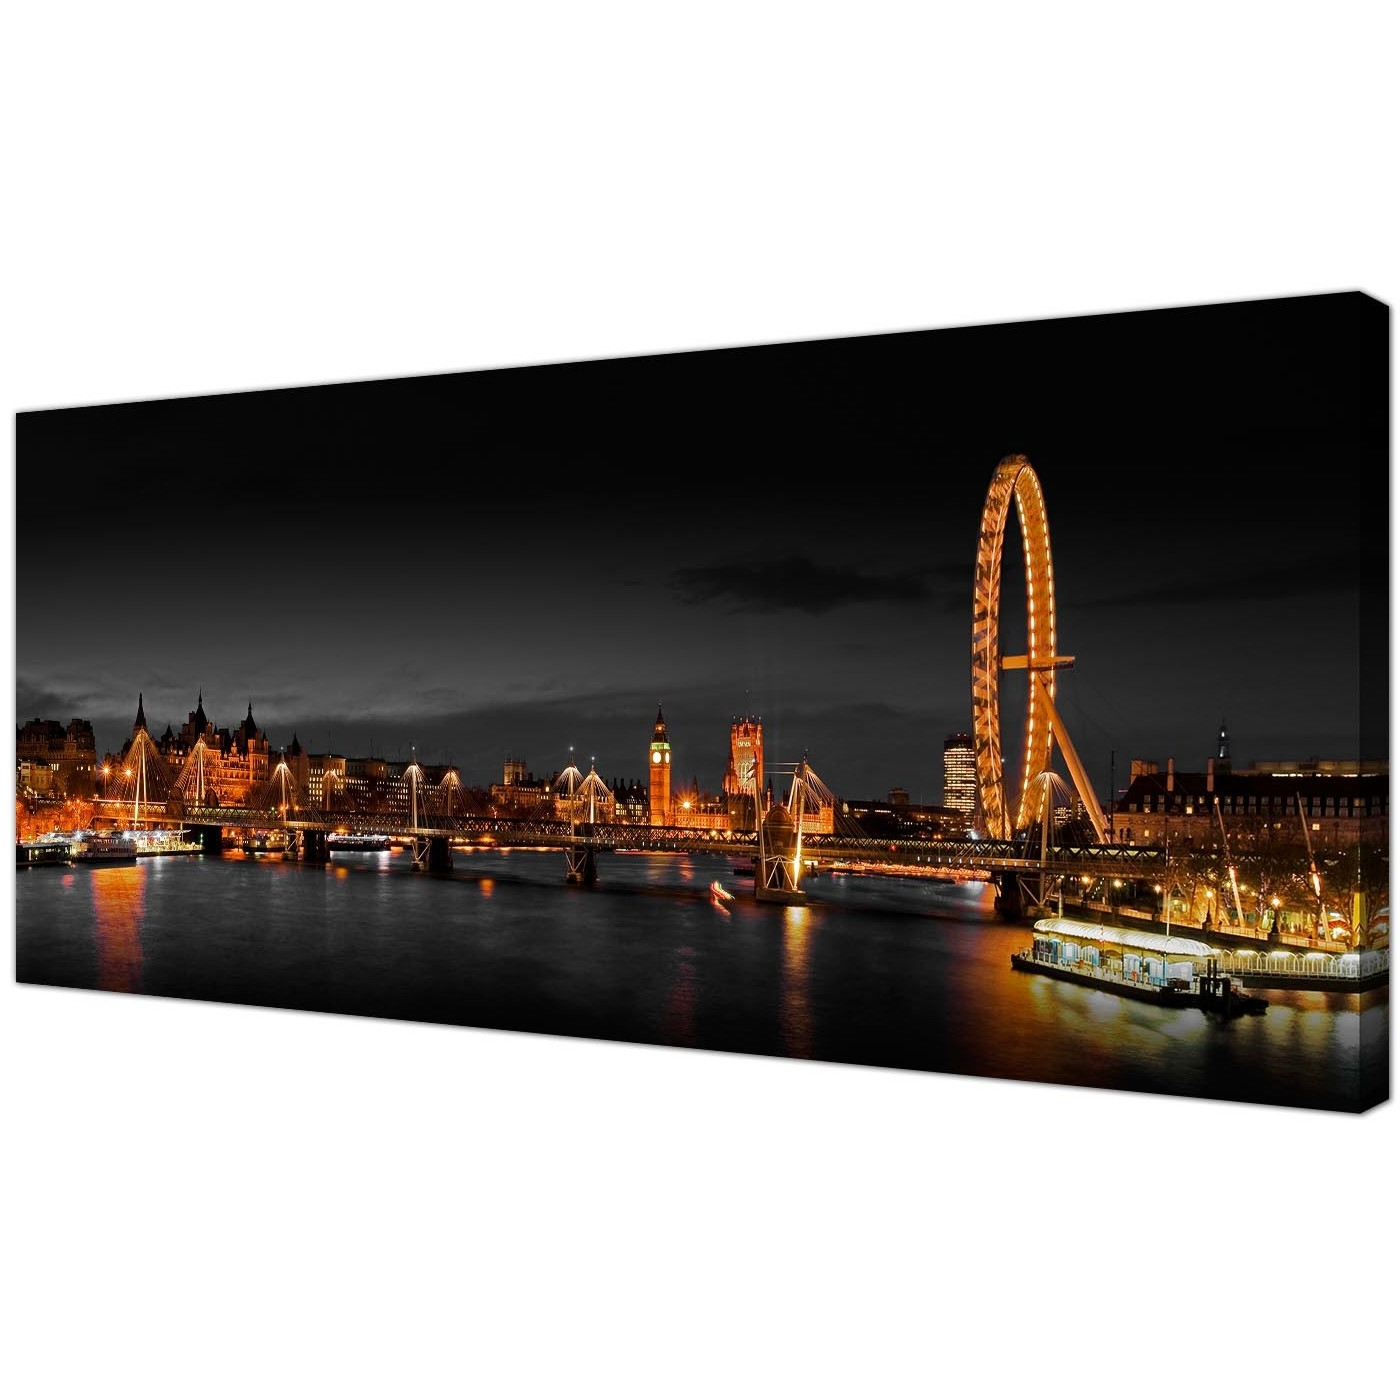 Canvas Wall Art Of London In Well Known Panoramic Canvas Wall Art Of London Eye At Night For Your Living Room (View 3 of 15)